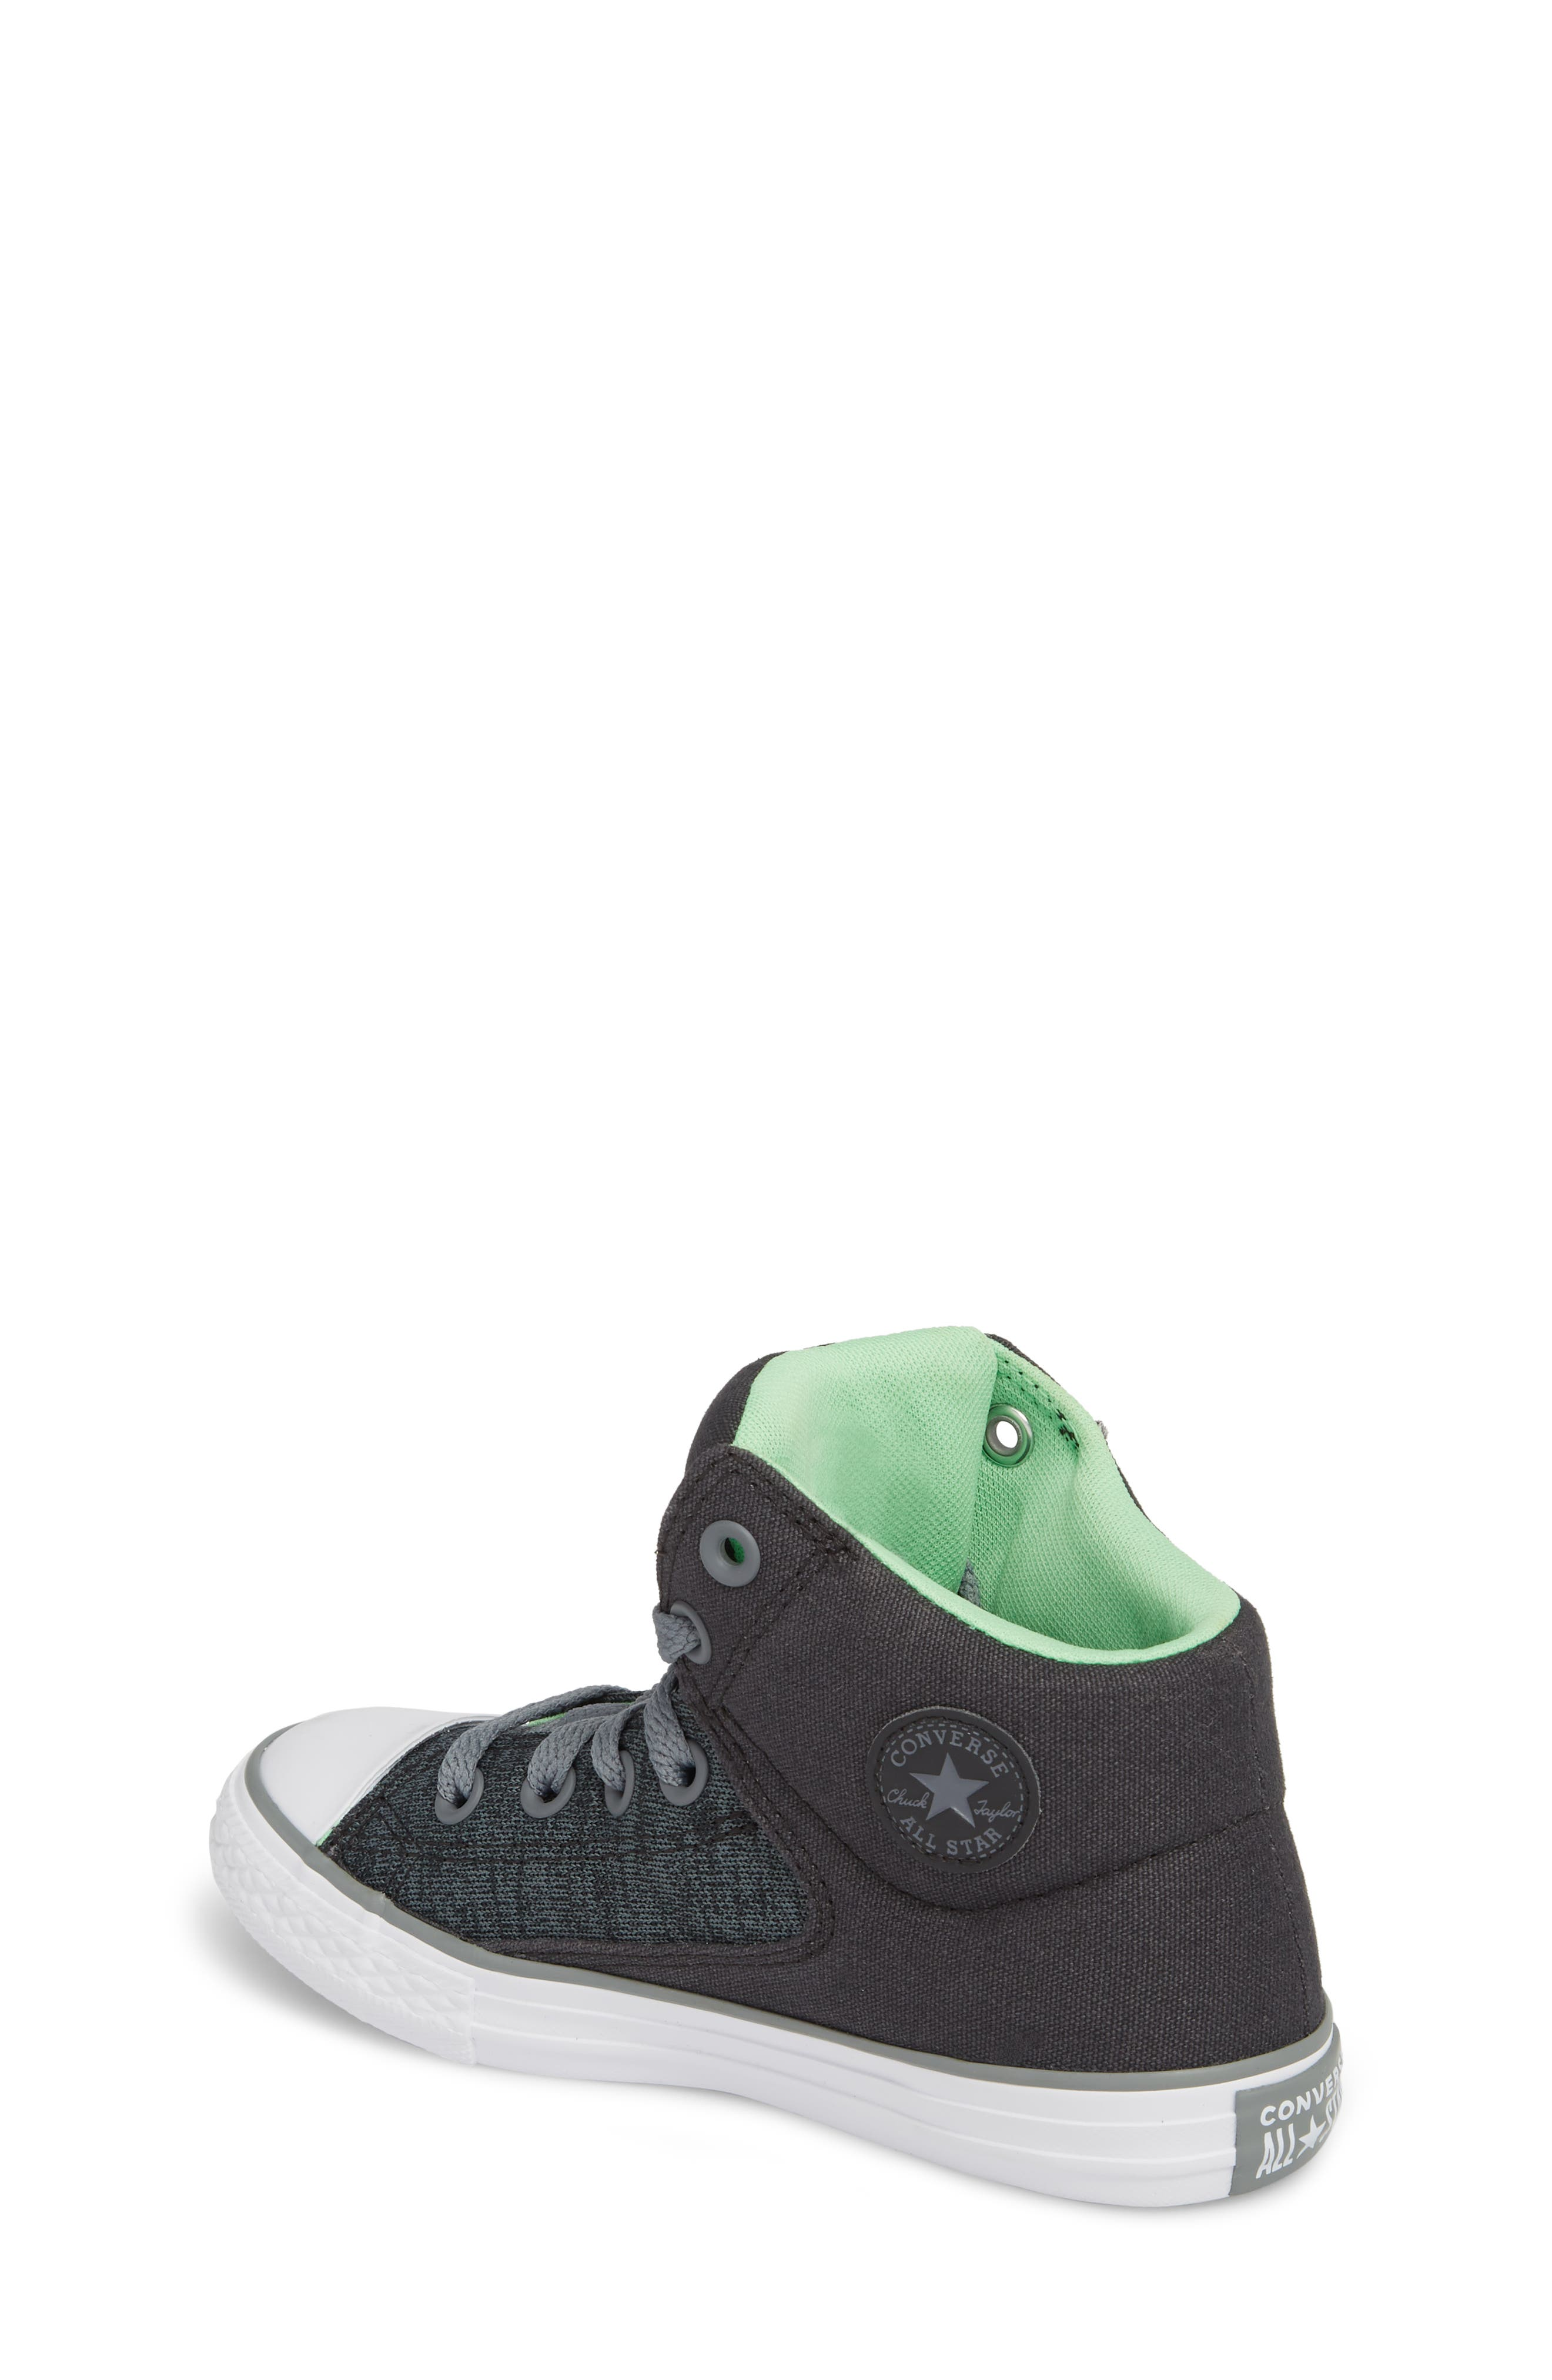 Chuck Taylor<sup>®</sup> All Star<sup>®</sup> High Street High Top Sneaker,                             Alternate thumbnail 2, color,                             Almost Black